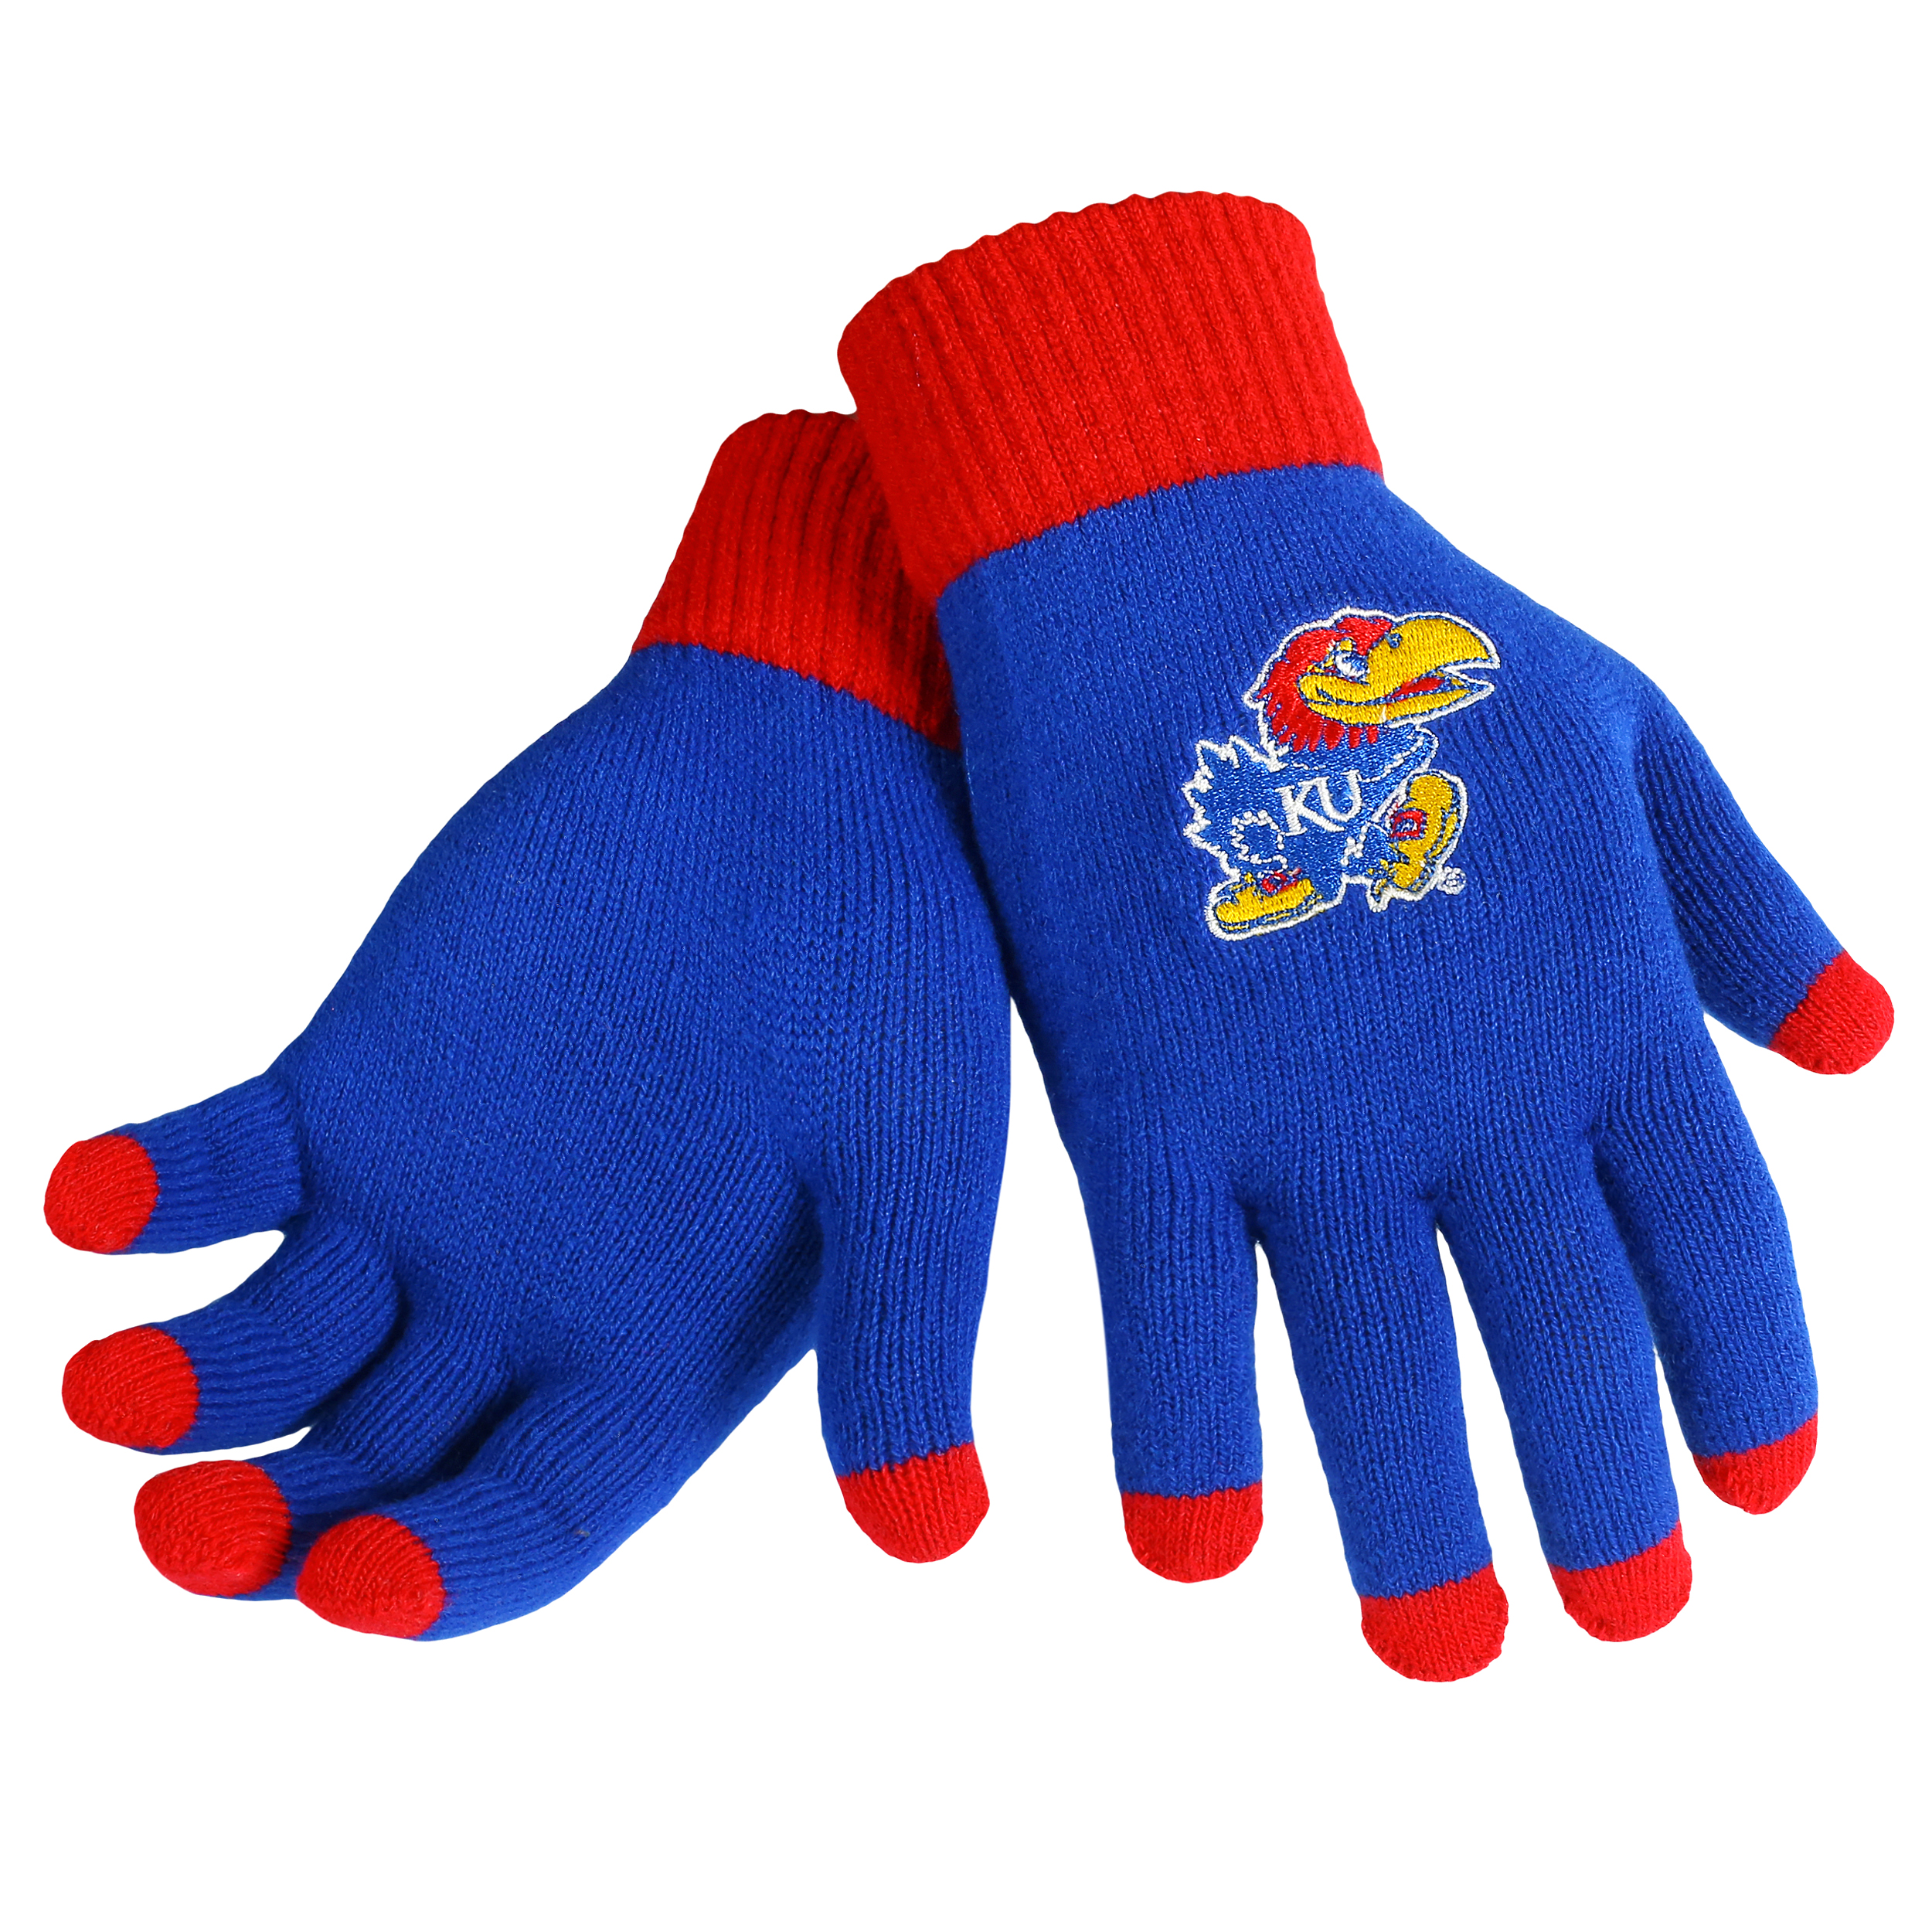 Kansas Jayhawks Official NCAA Glove Solid Outdoor Winter Stretch Knit by Forever Collectibles 262749 by Forever Collectibles